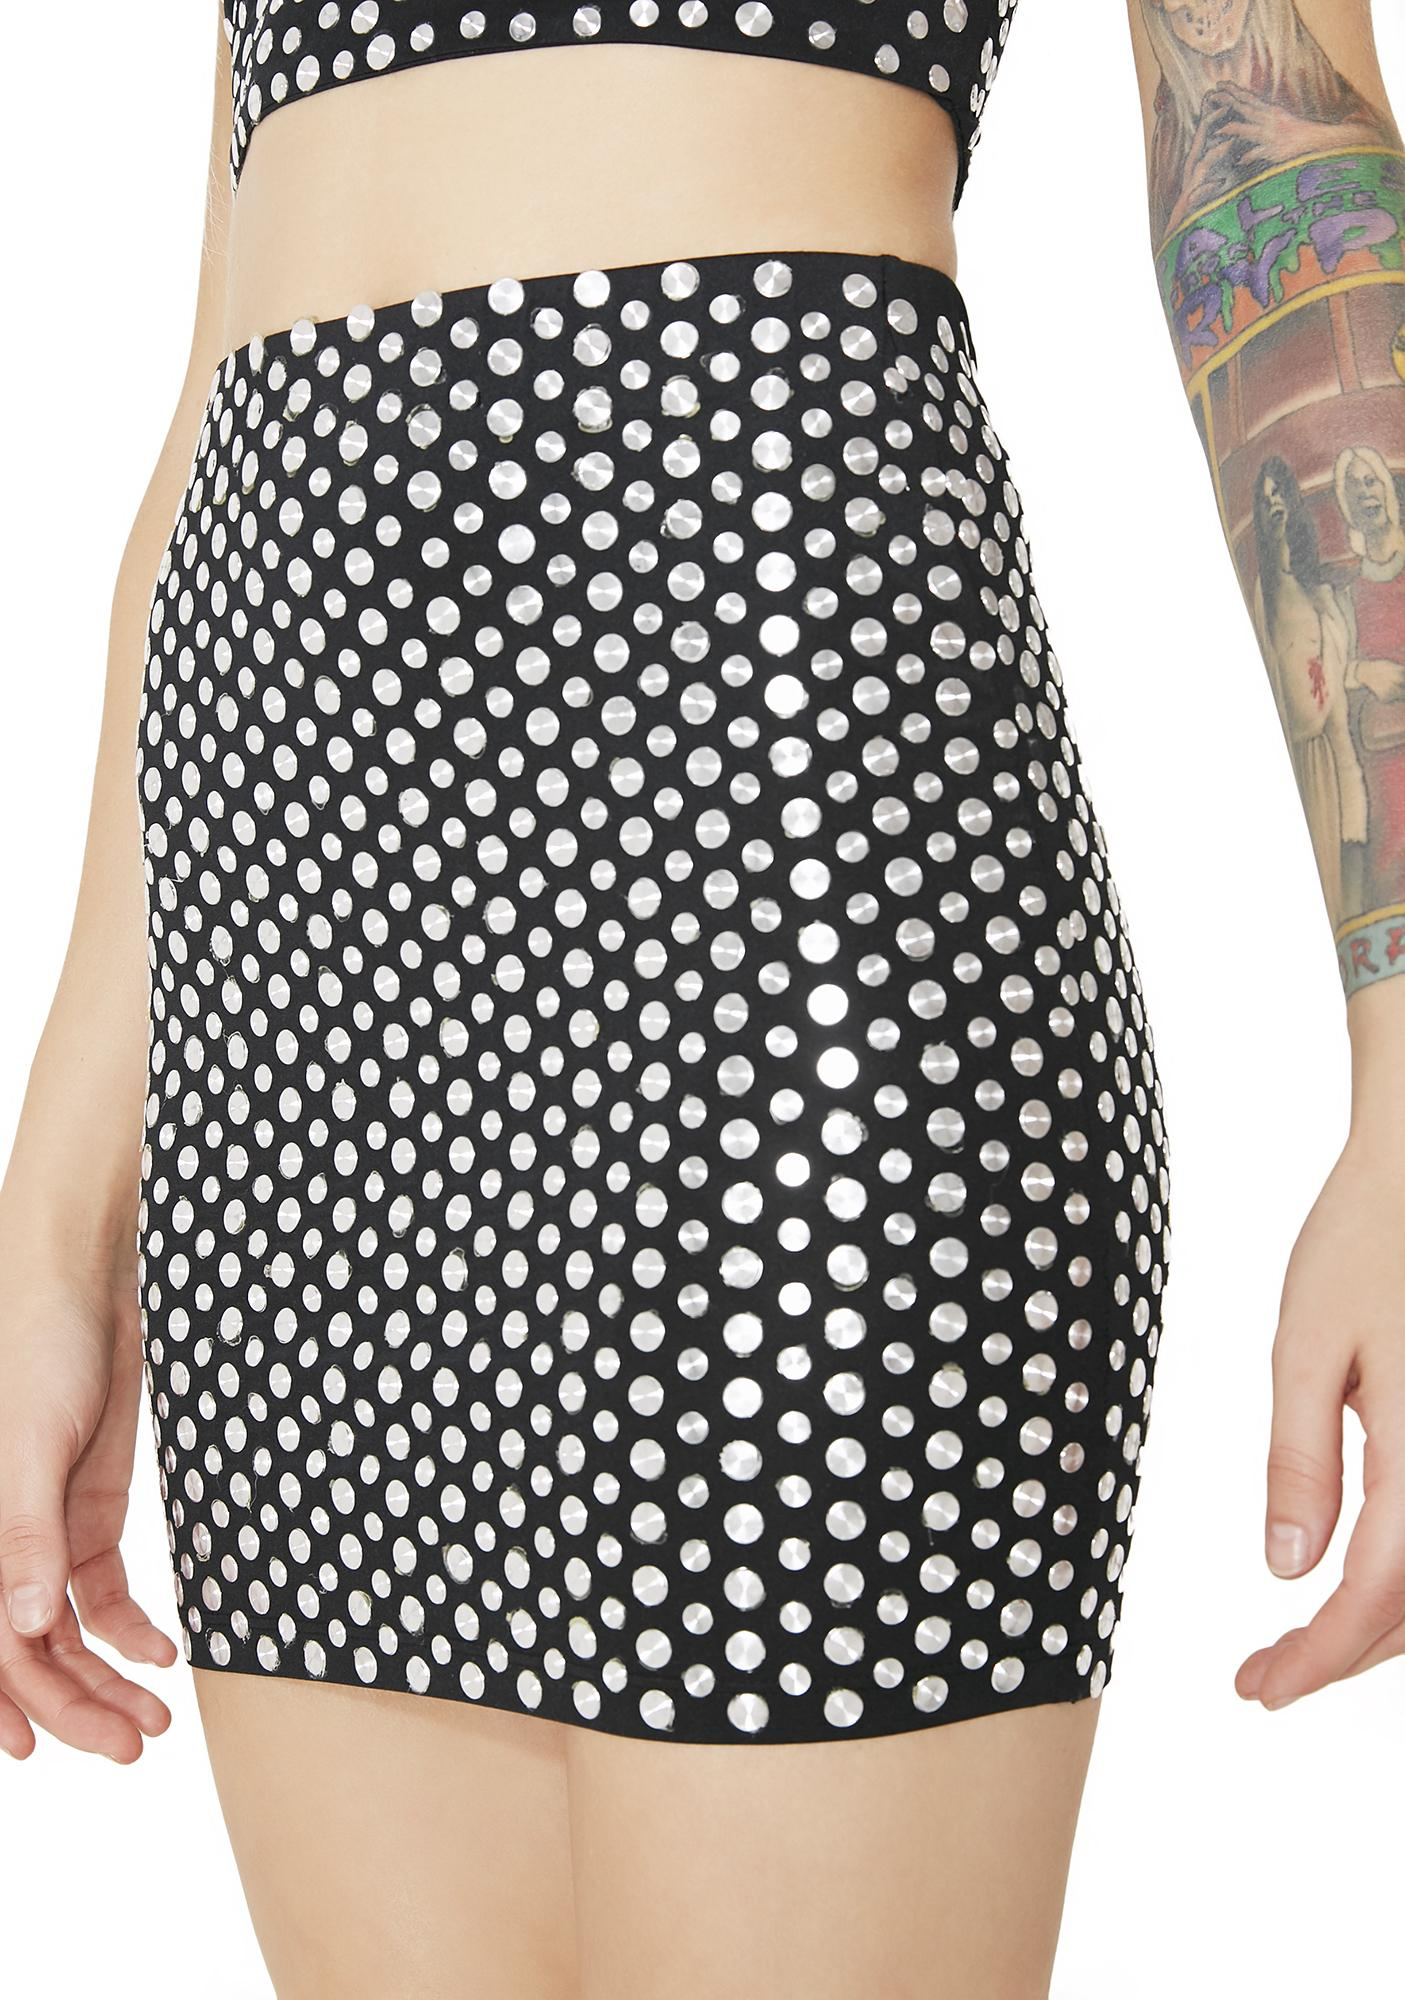 Kiki Riki Easy Money Studded Mini Skirt